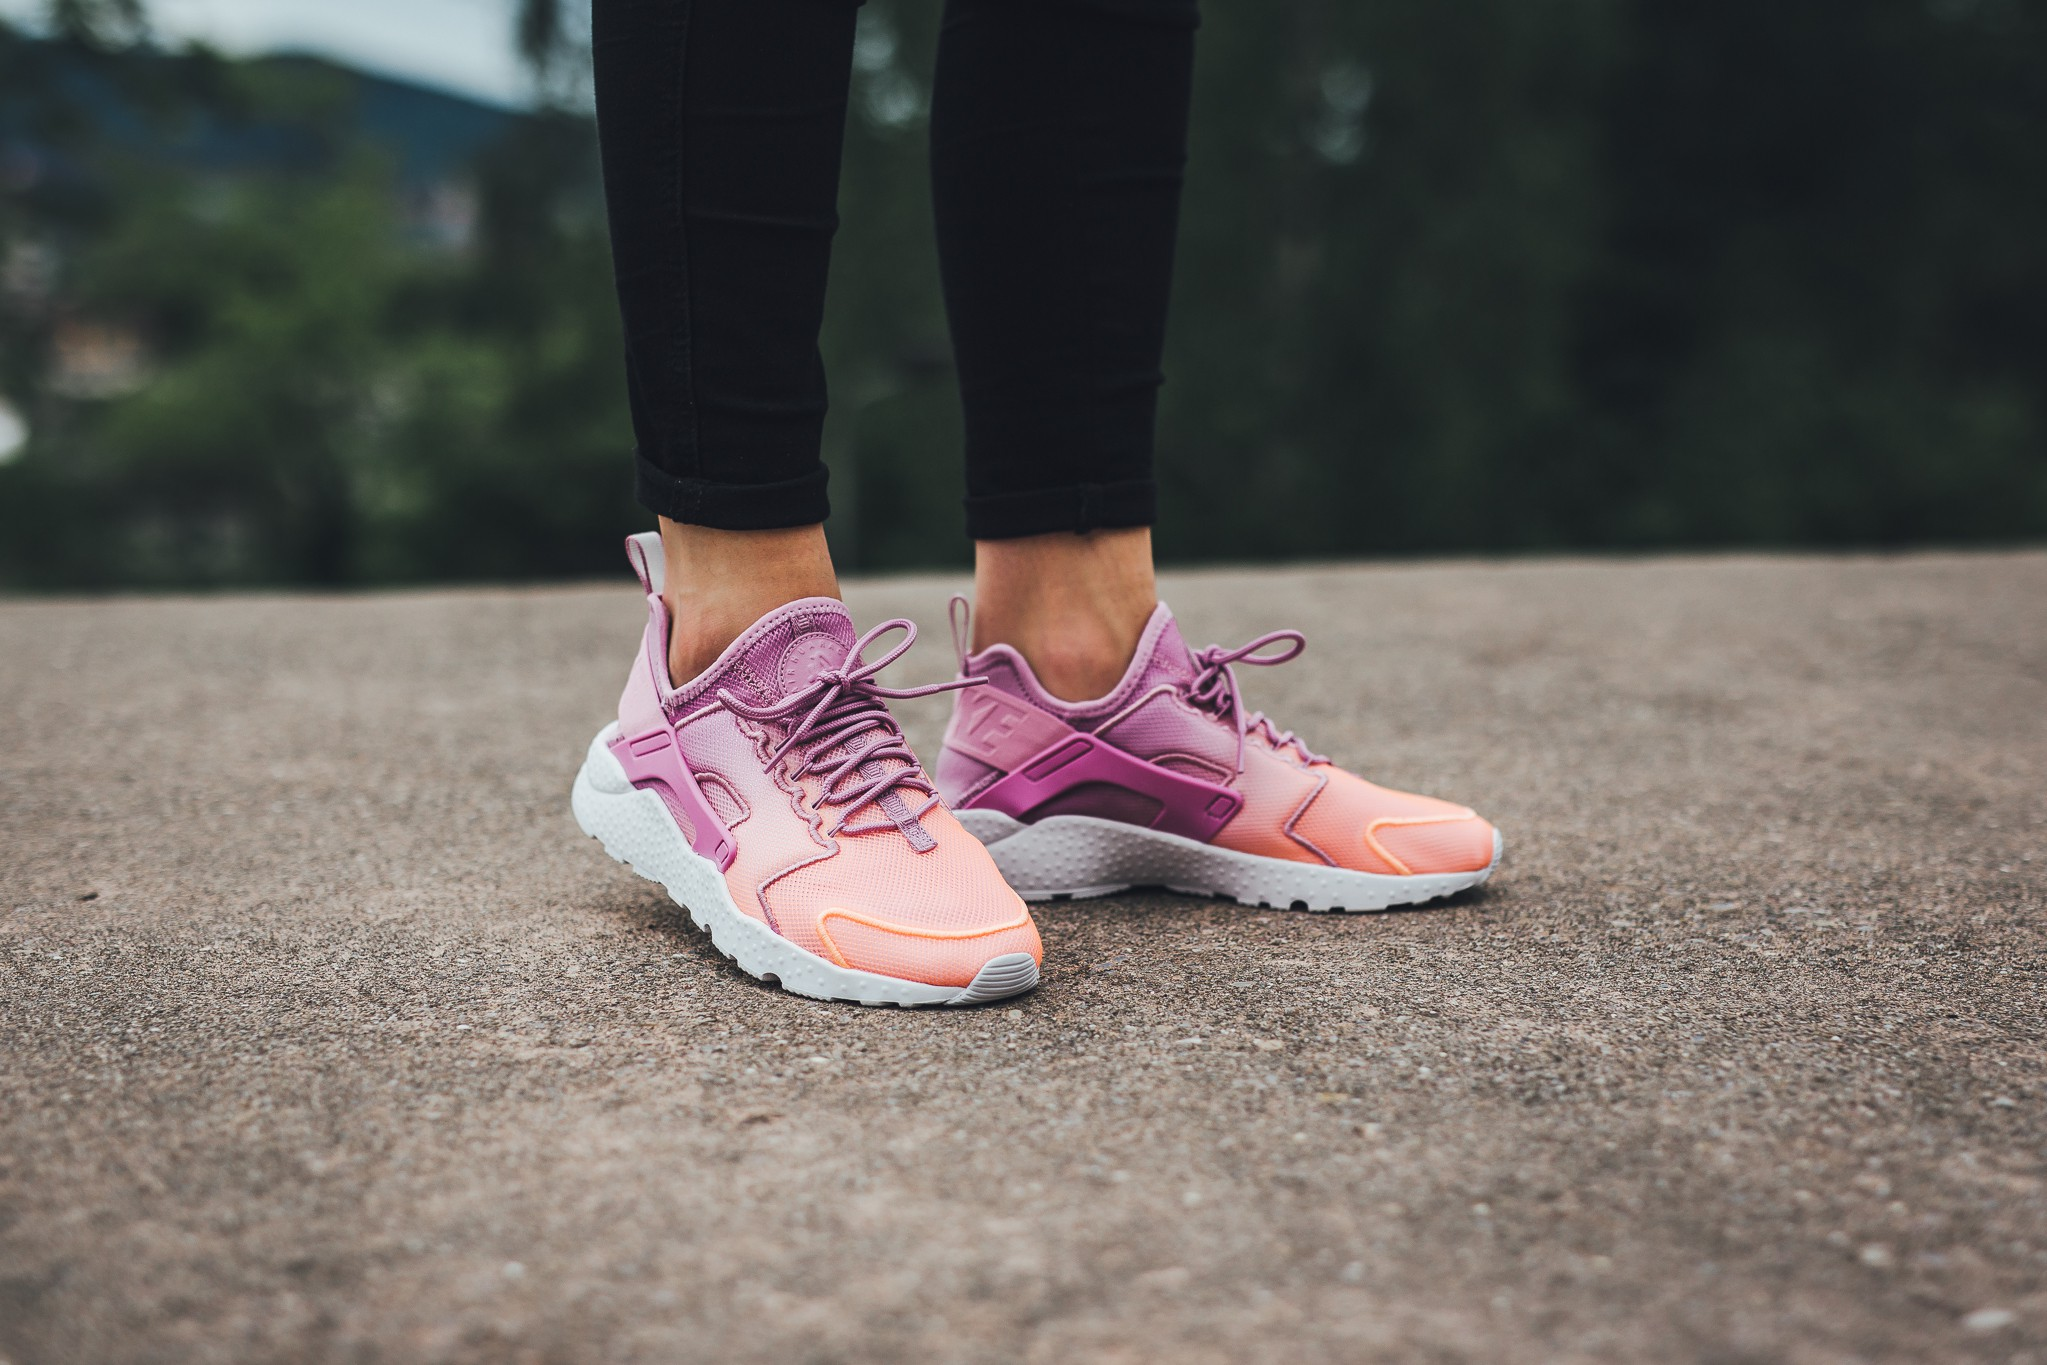 4d915fd1c4366 Designed to stretch with your foot, the women's Nike Air Huarache Ultra  Breathe is a modern look of the '90s classic with cooling, Nike Tech  Ultramesh for ...